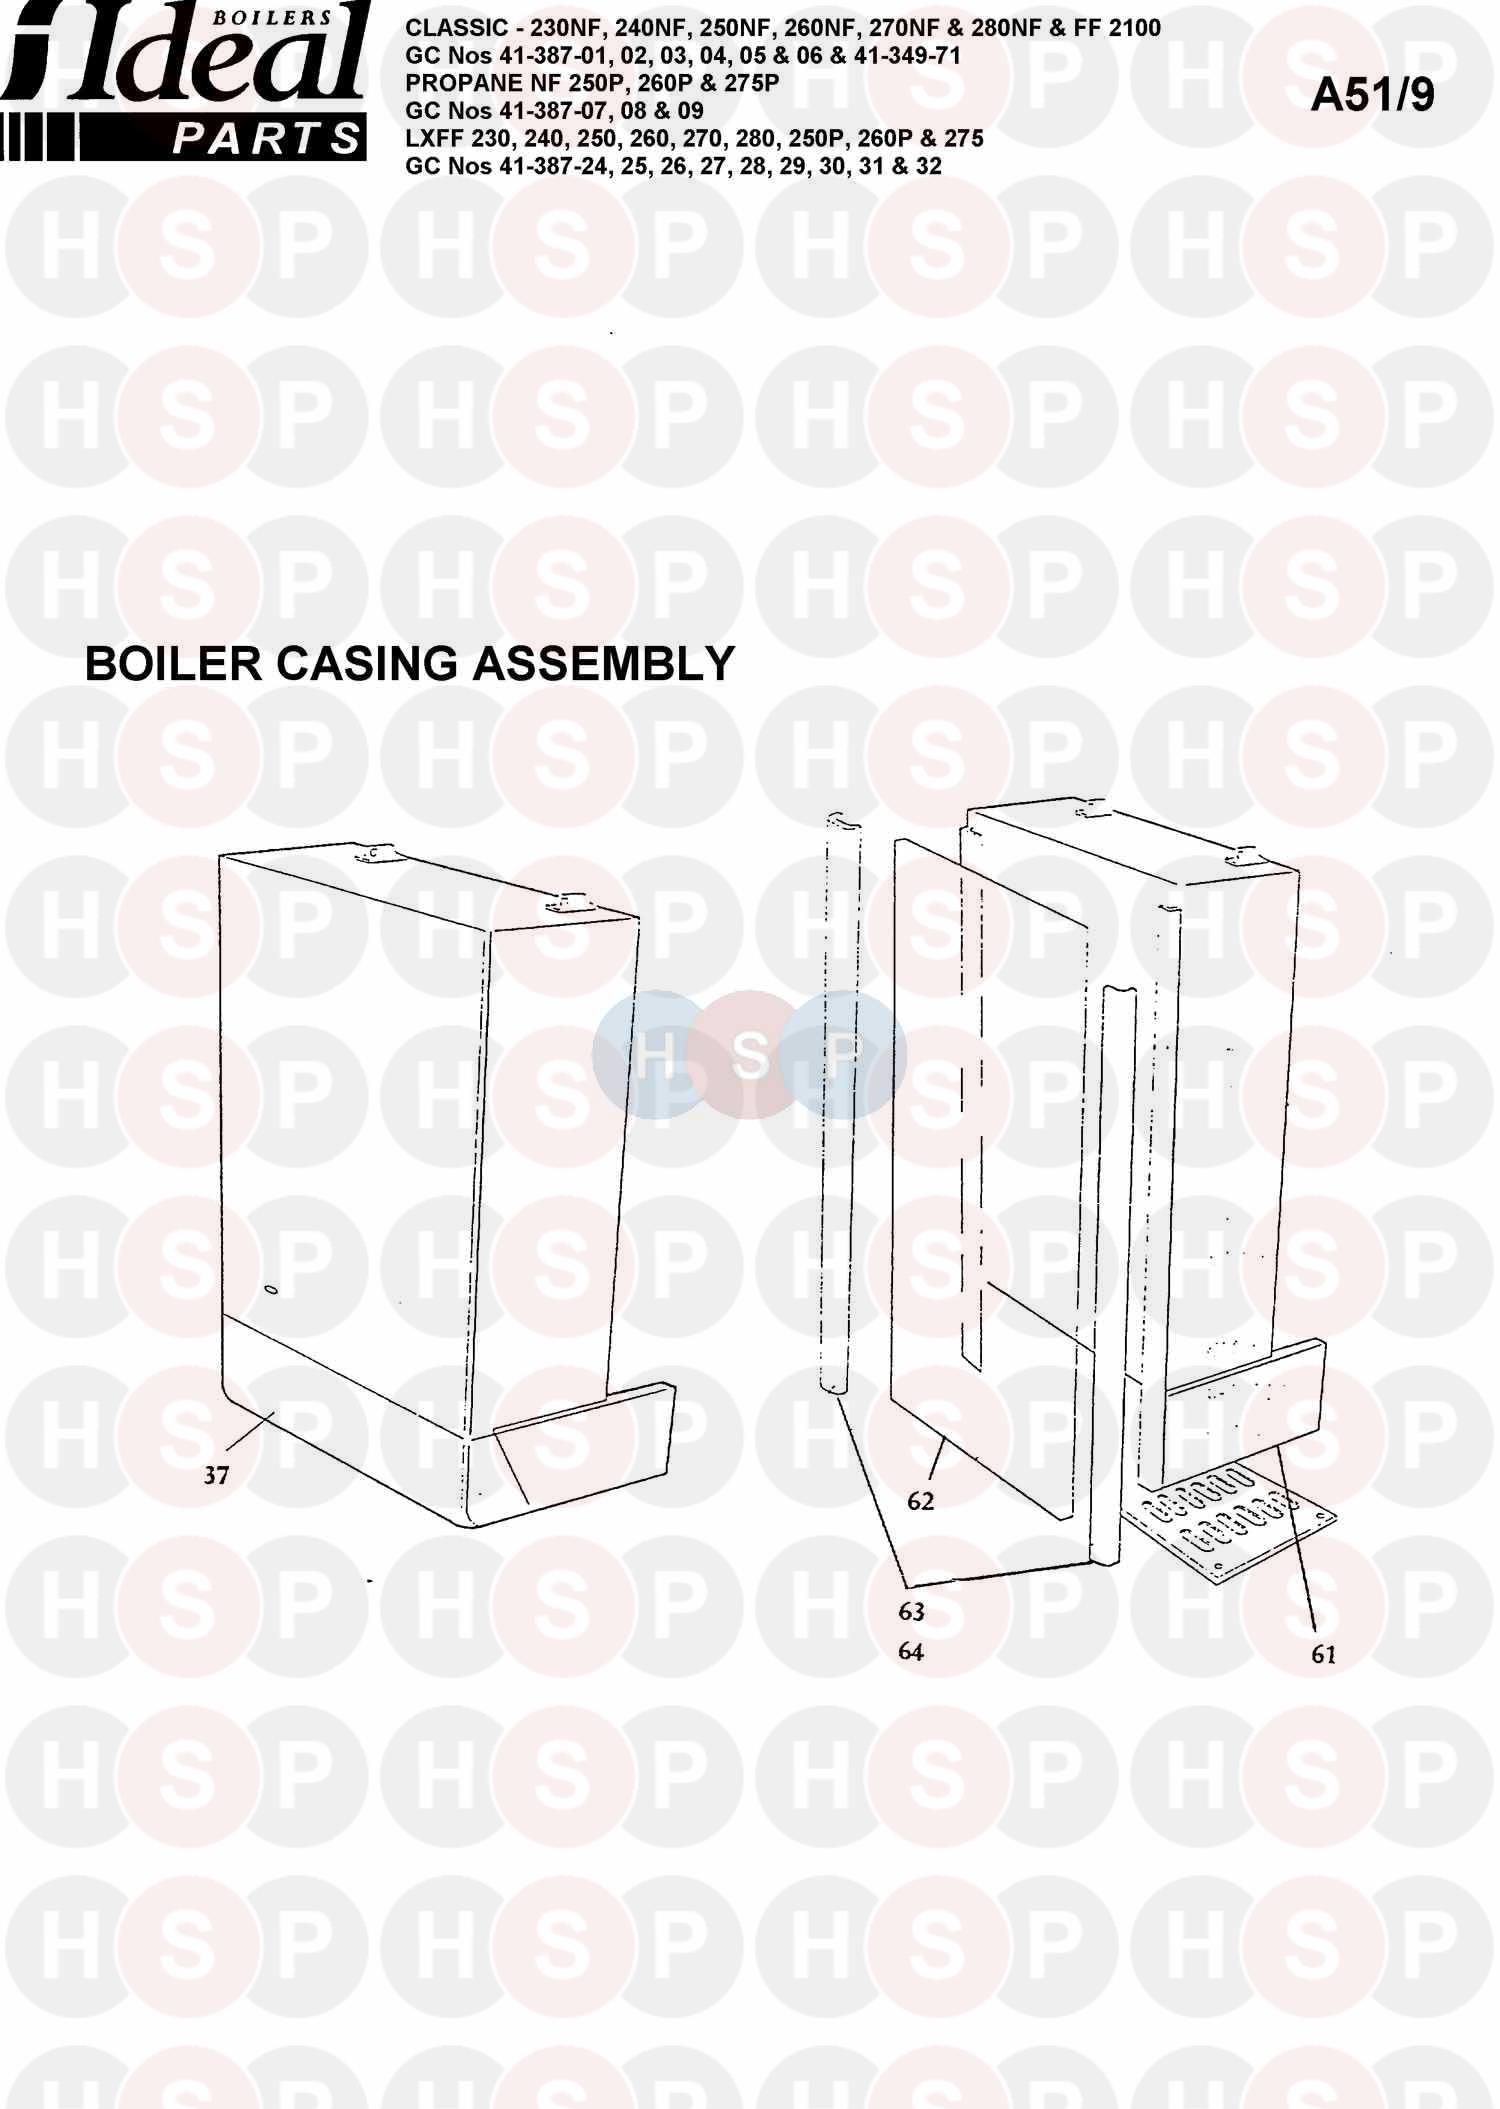 Ideal CLASSIC LXFF 240 Appliance Diagram (Boiler Casing